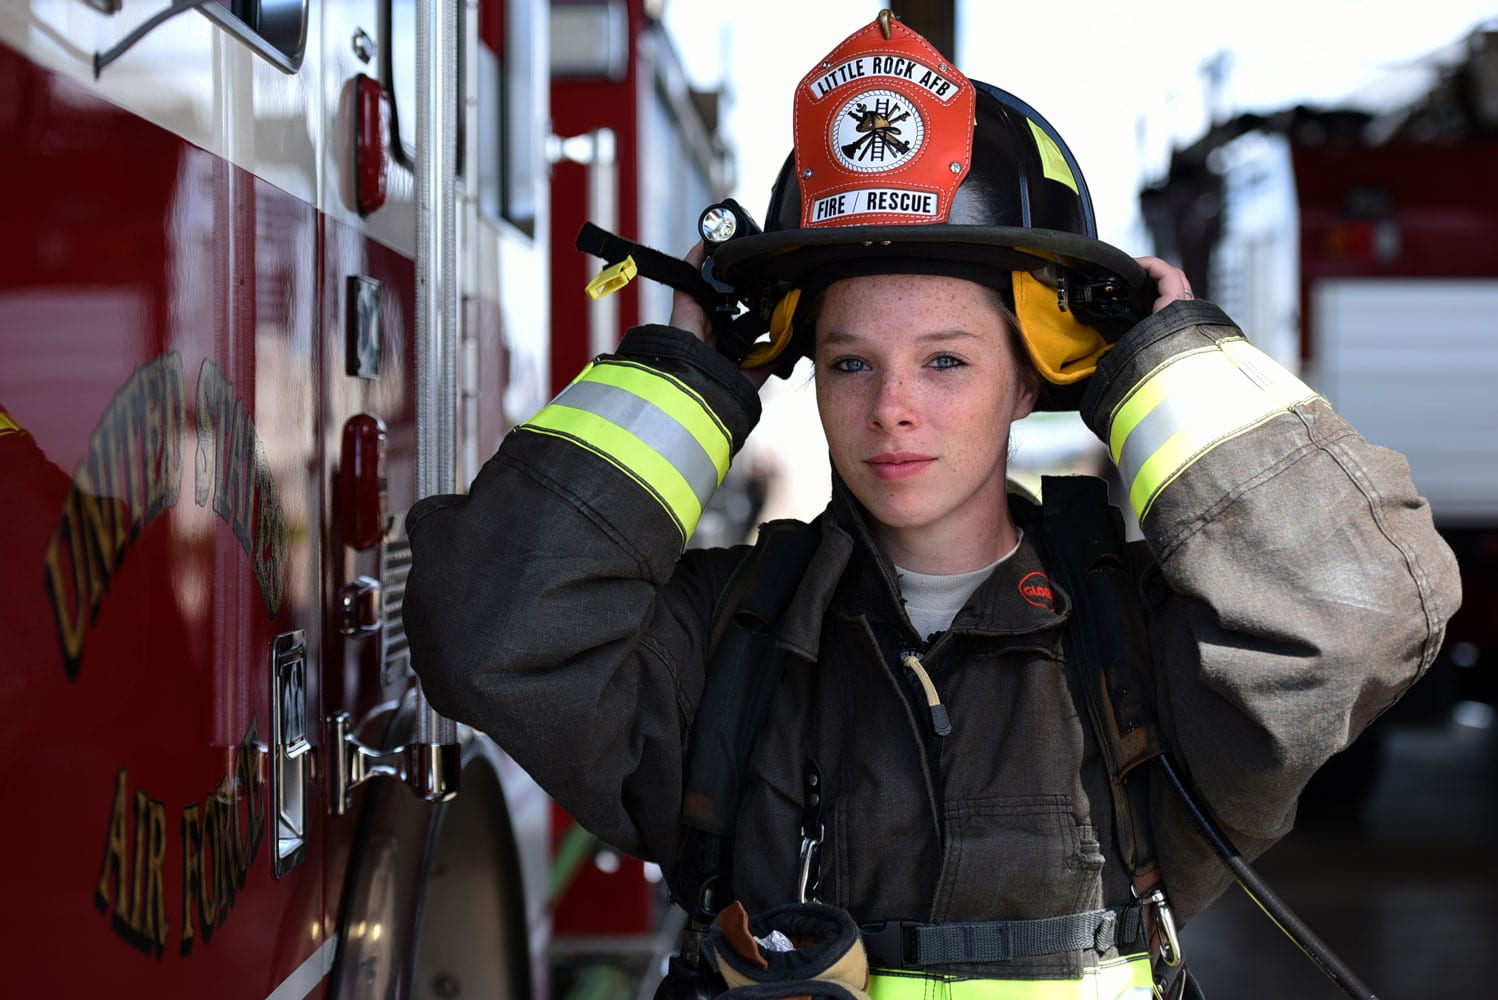 U.S. Air Force Airman Shyanne Chism, 19th Civil Engineer Squadron Fire Department firefighter apprentice, dons her helmet at Little Rock Air Force Base, Ark. Firefighters traditionally fold their gear before formal roll-calls, which announce the official change of individuals on shift and allows firefighters to brief each other on any happenings.